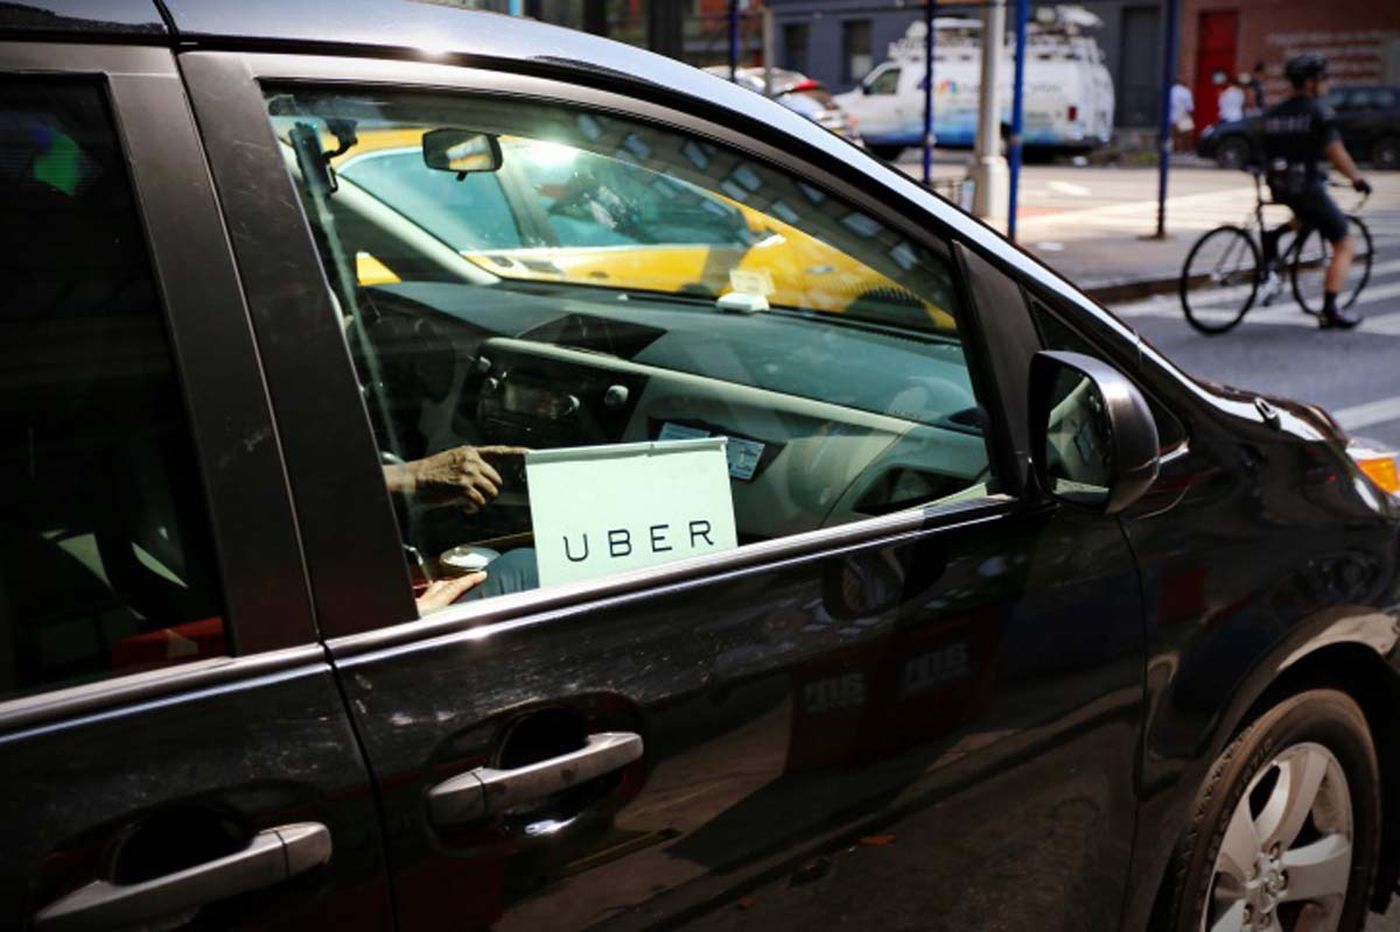 Police officer goes undercover as Uber driver for pot bust